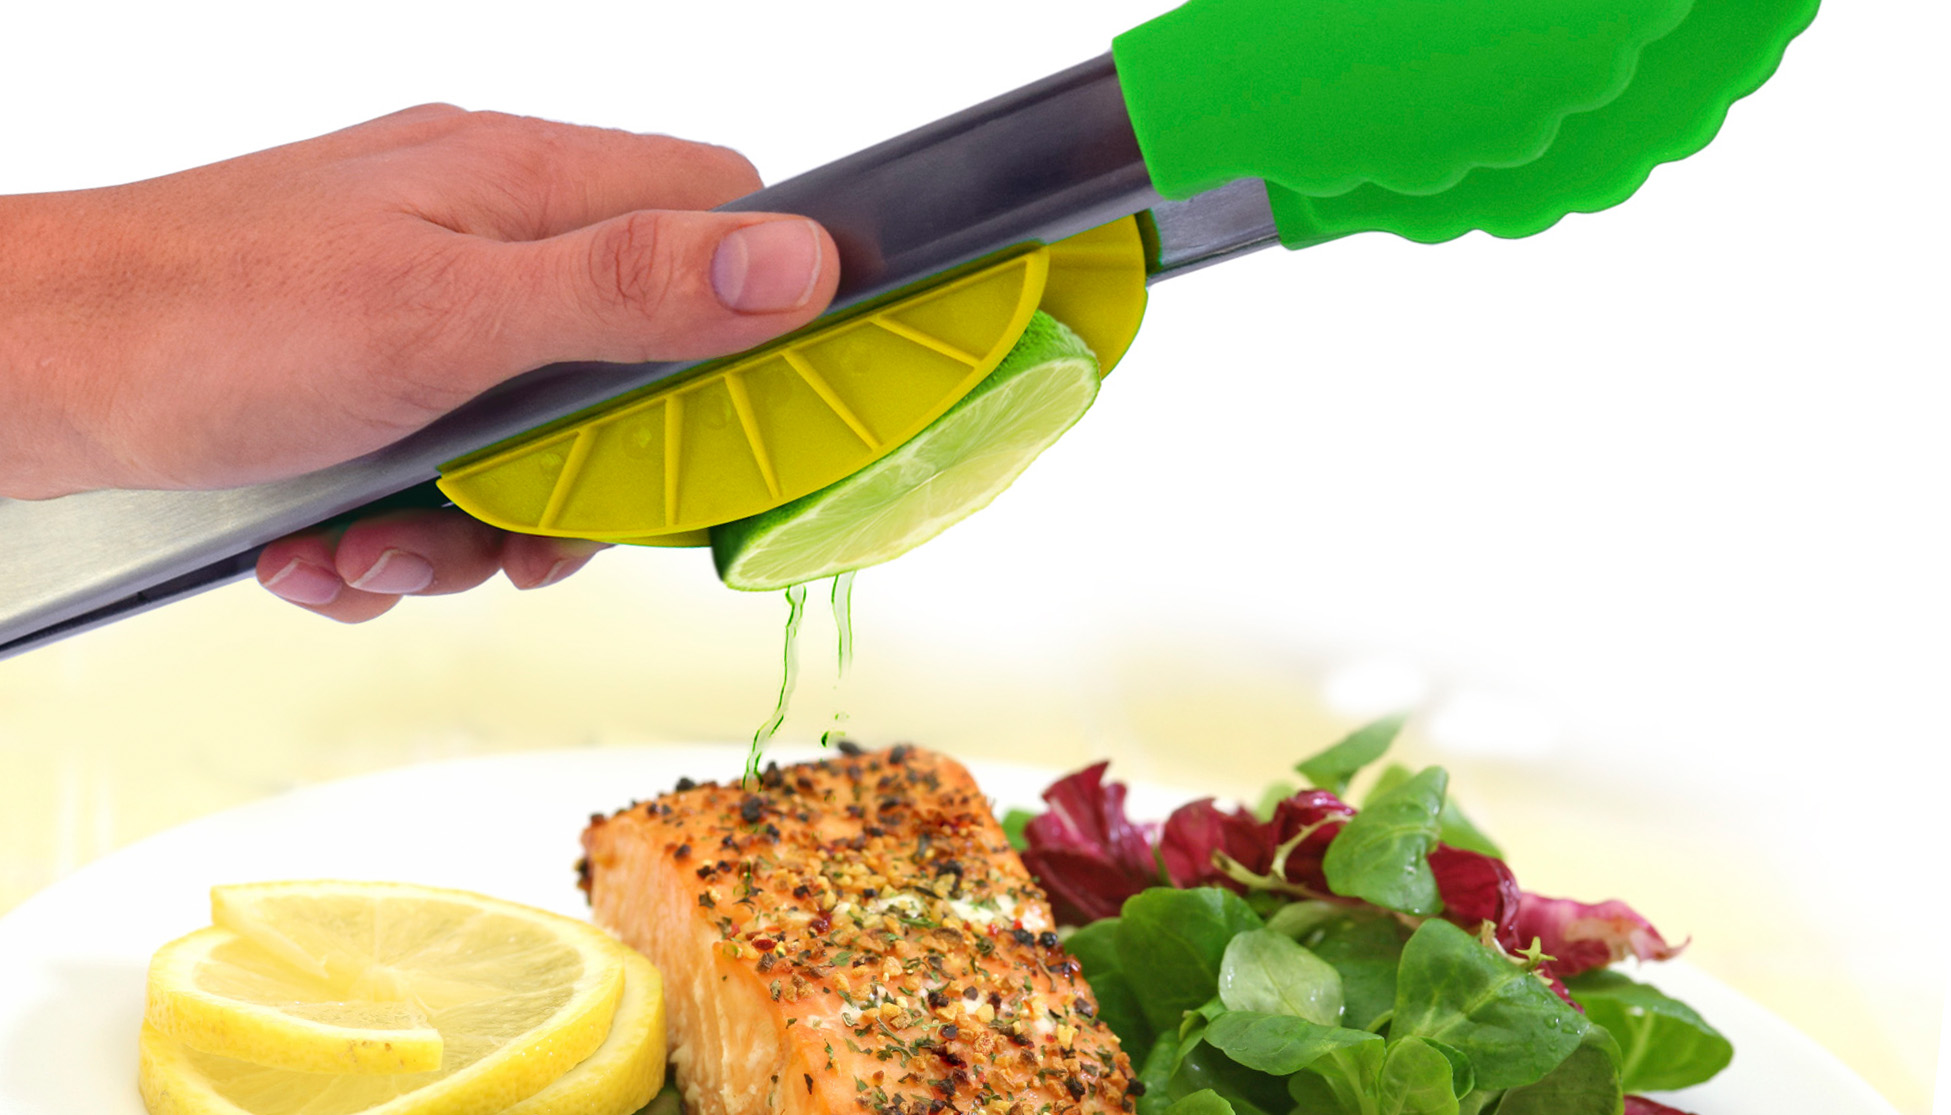 Kitchen tool design- Lemon or lime squeezer